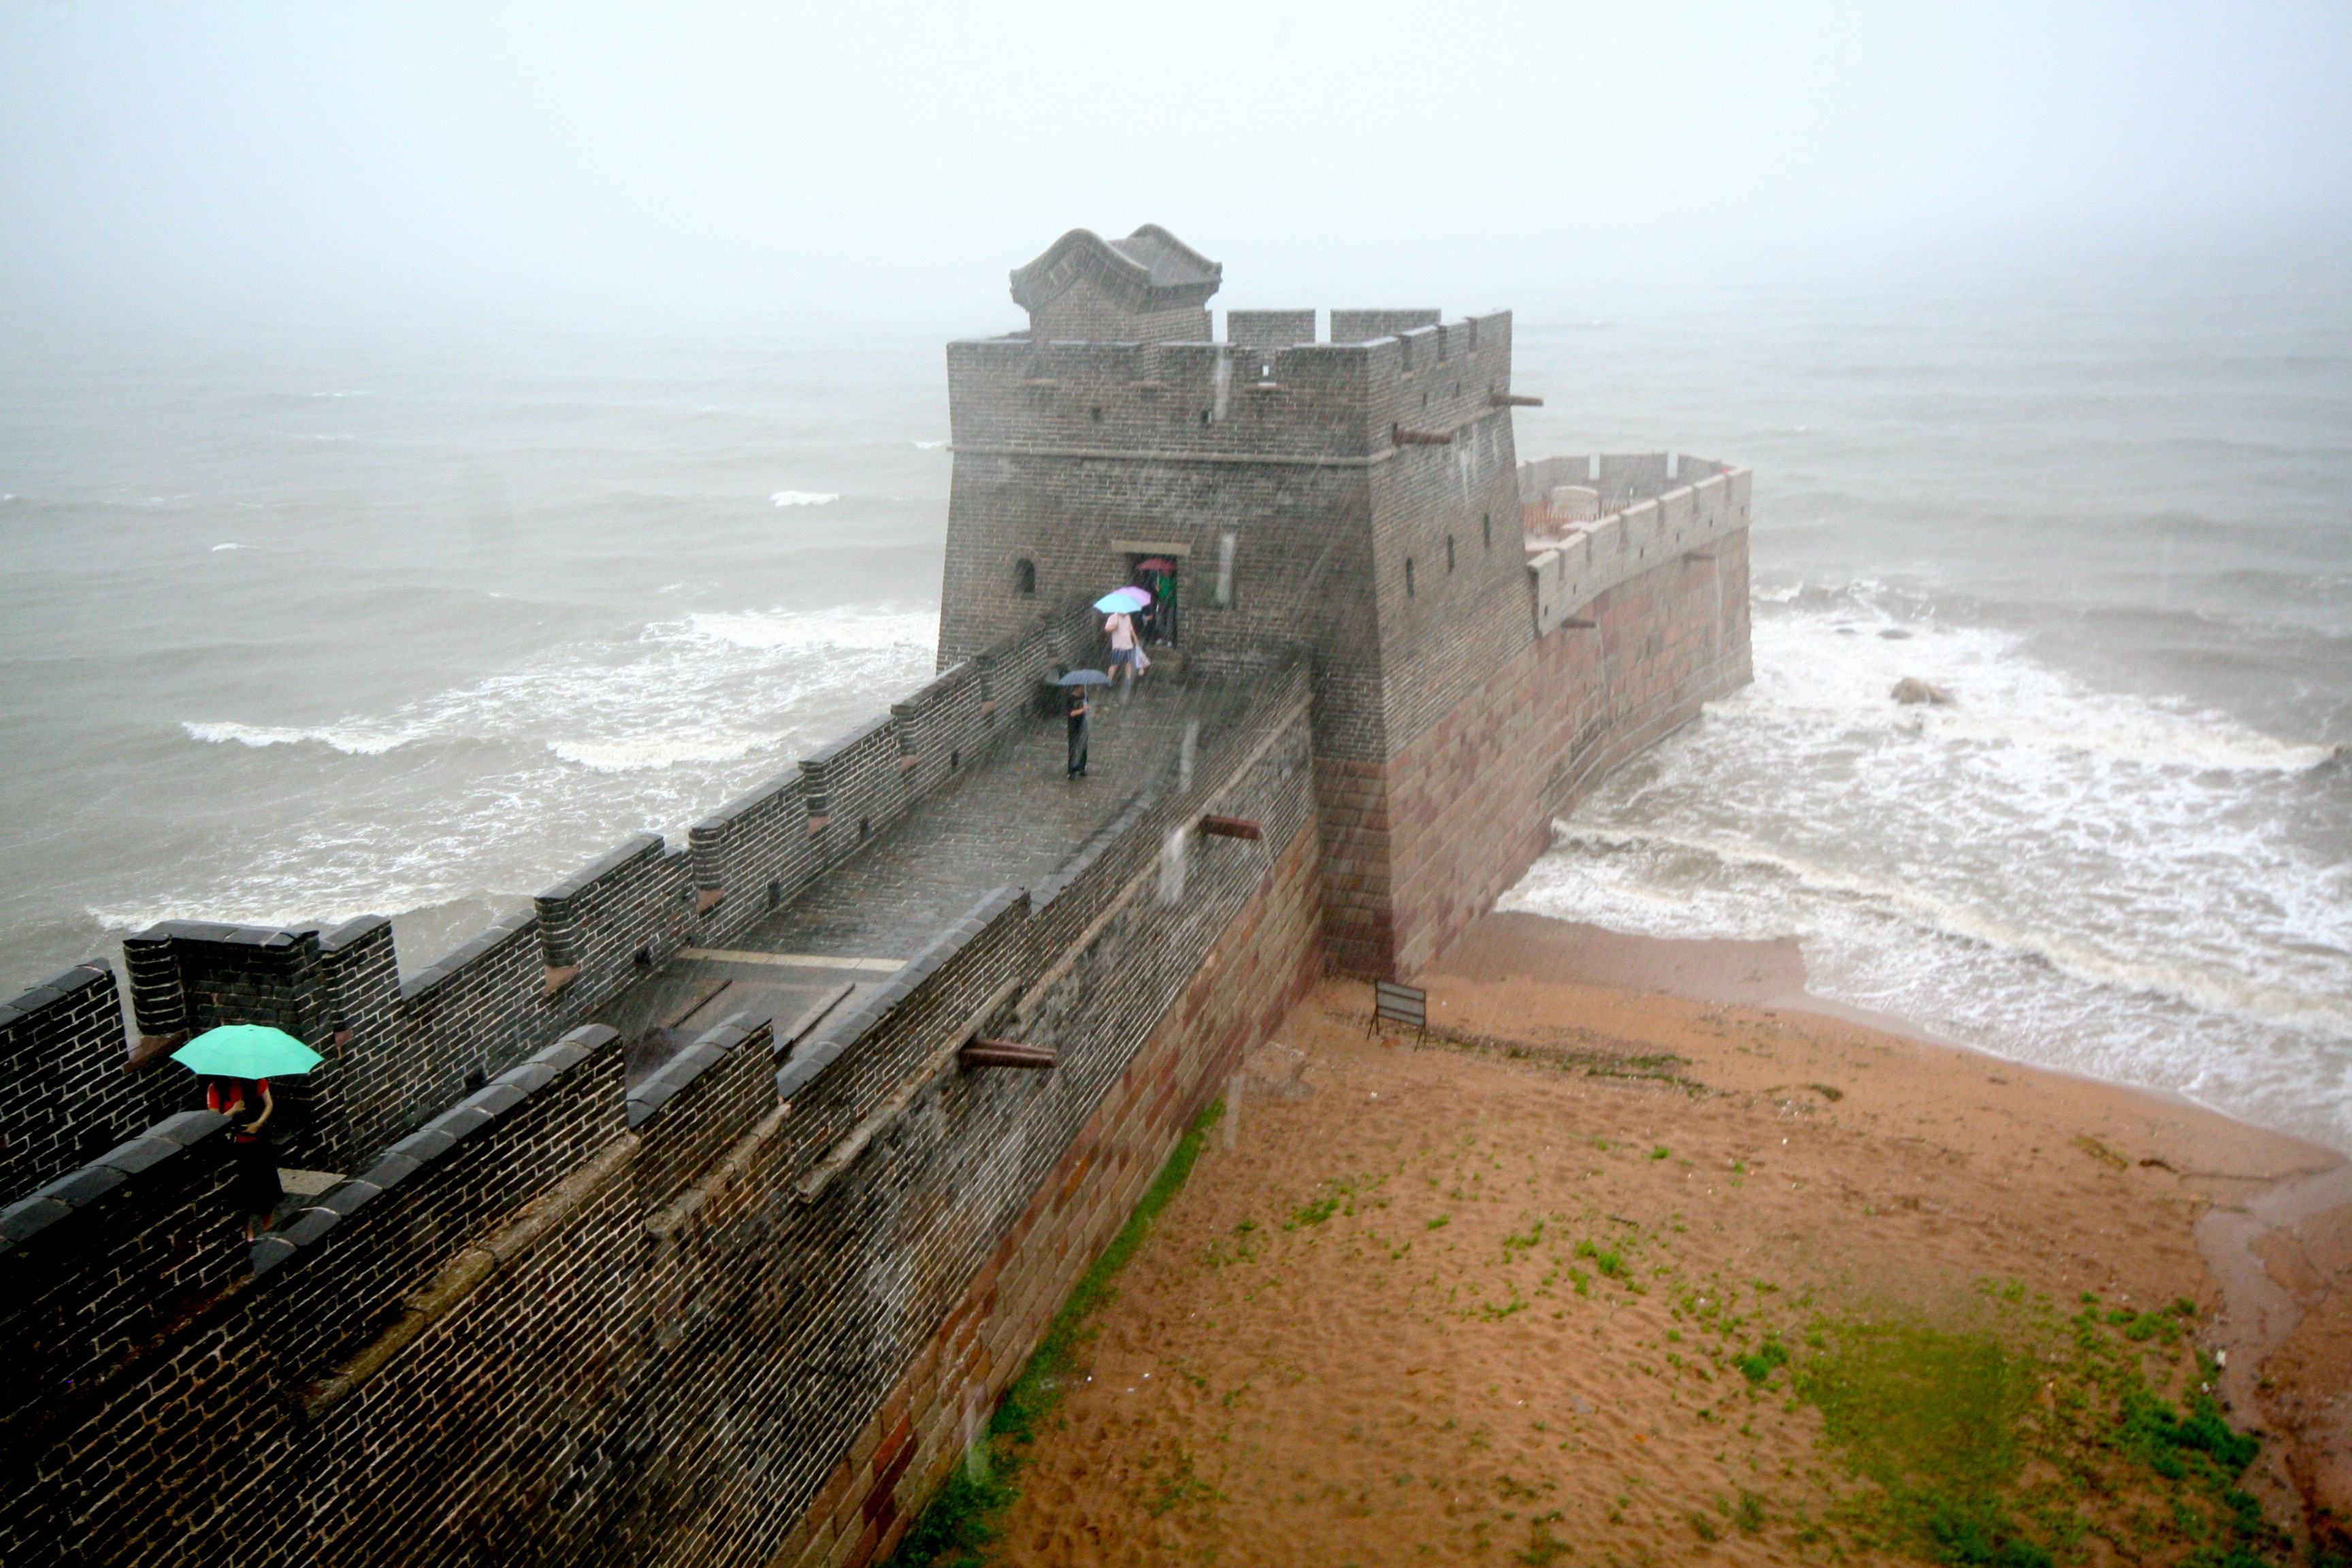 2. The end of the Great Wall of China.